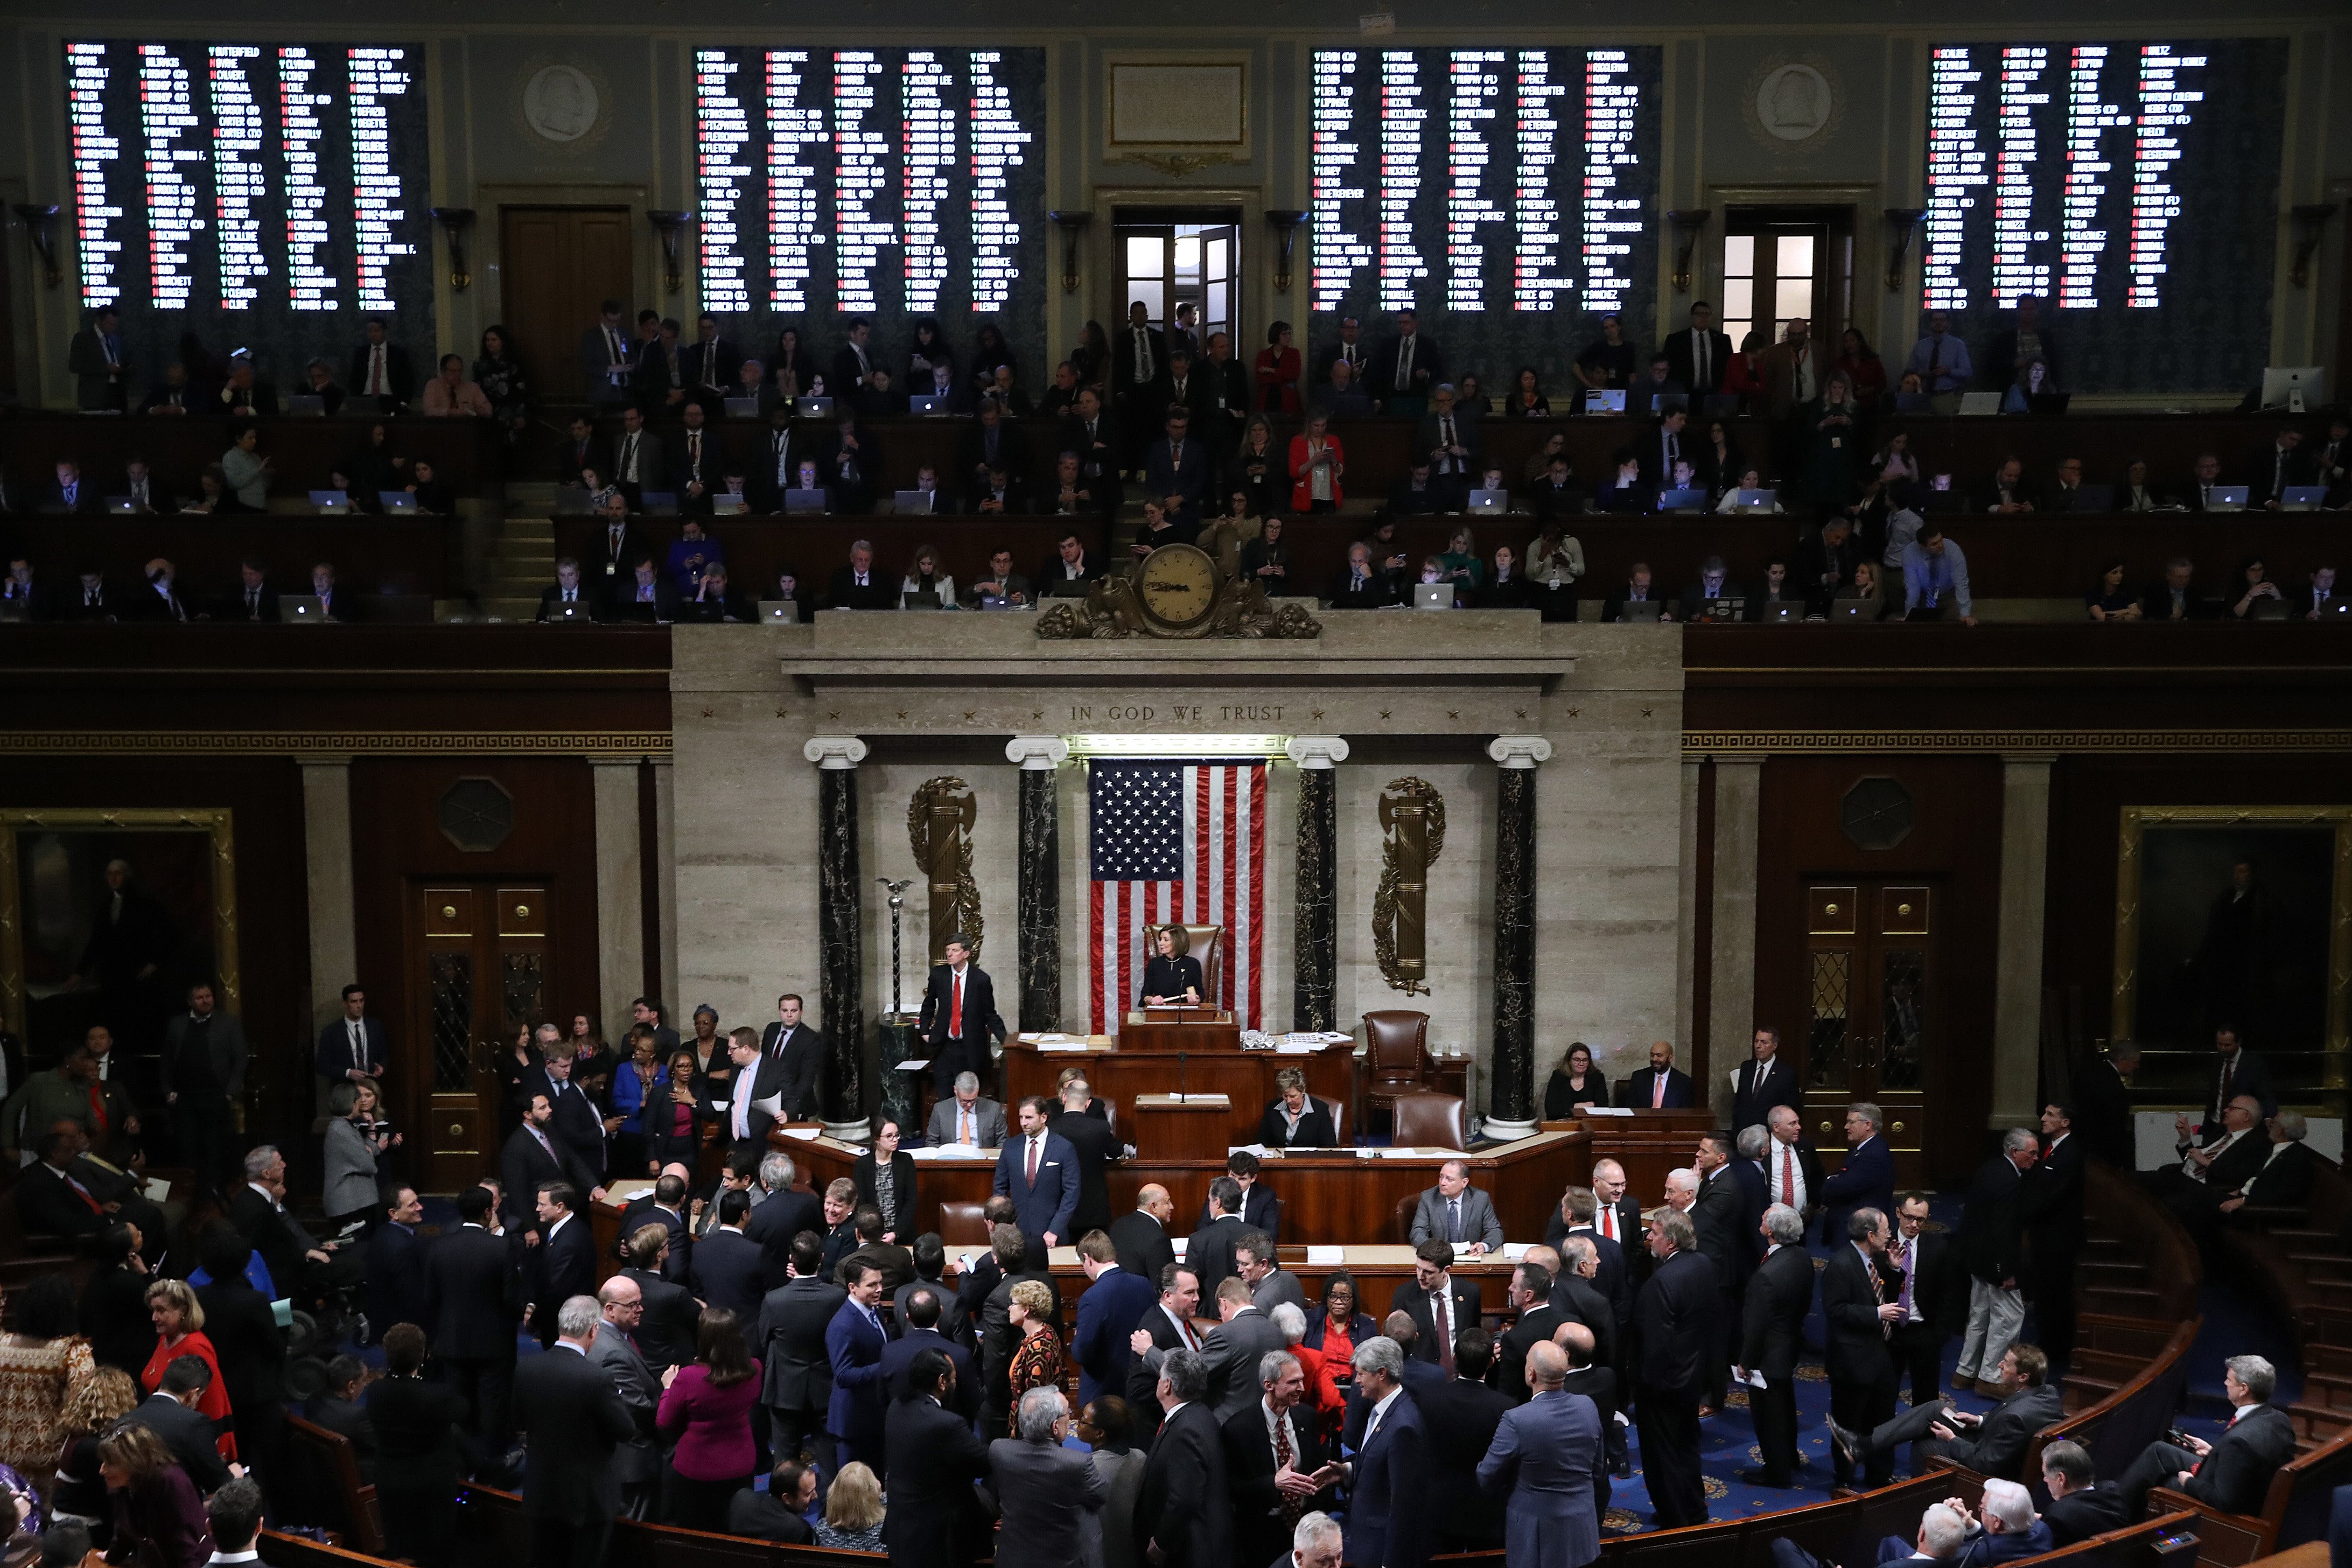 WASHINGTON, DC - DECEMBER 18: The vote count is projected on the walls of the House of Representatives as Speaker of the House Nancy Pelosi (D-CA) presides over voting on the second article of impeachment of U.S. President Donald Trump at in the House Chamber at the U.S. Capitol December 18, 2019 in Washington, DC. The U.S. House of Representatives voted to successfully pass two articles of impeachment against President Donald Trump on charges of abuse of power and obstruction of Congress. (Photo by Chip Somodevilla/Getty Images)